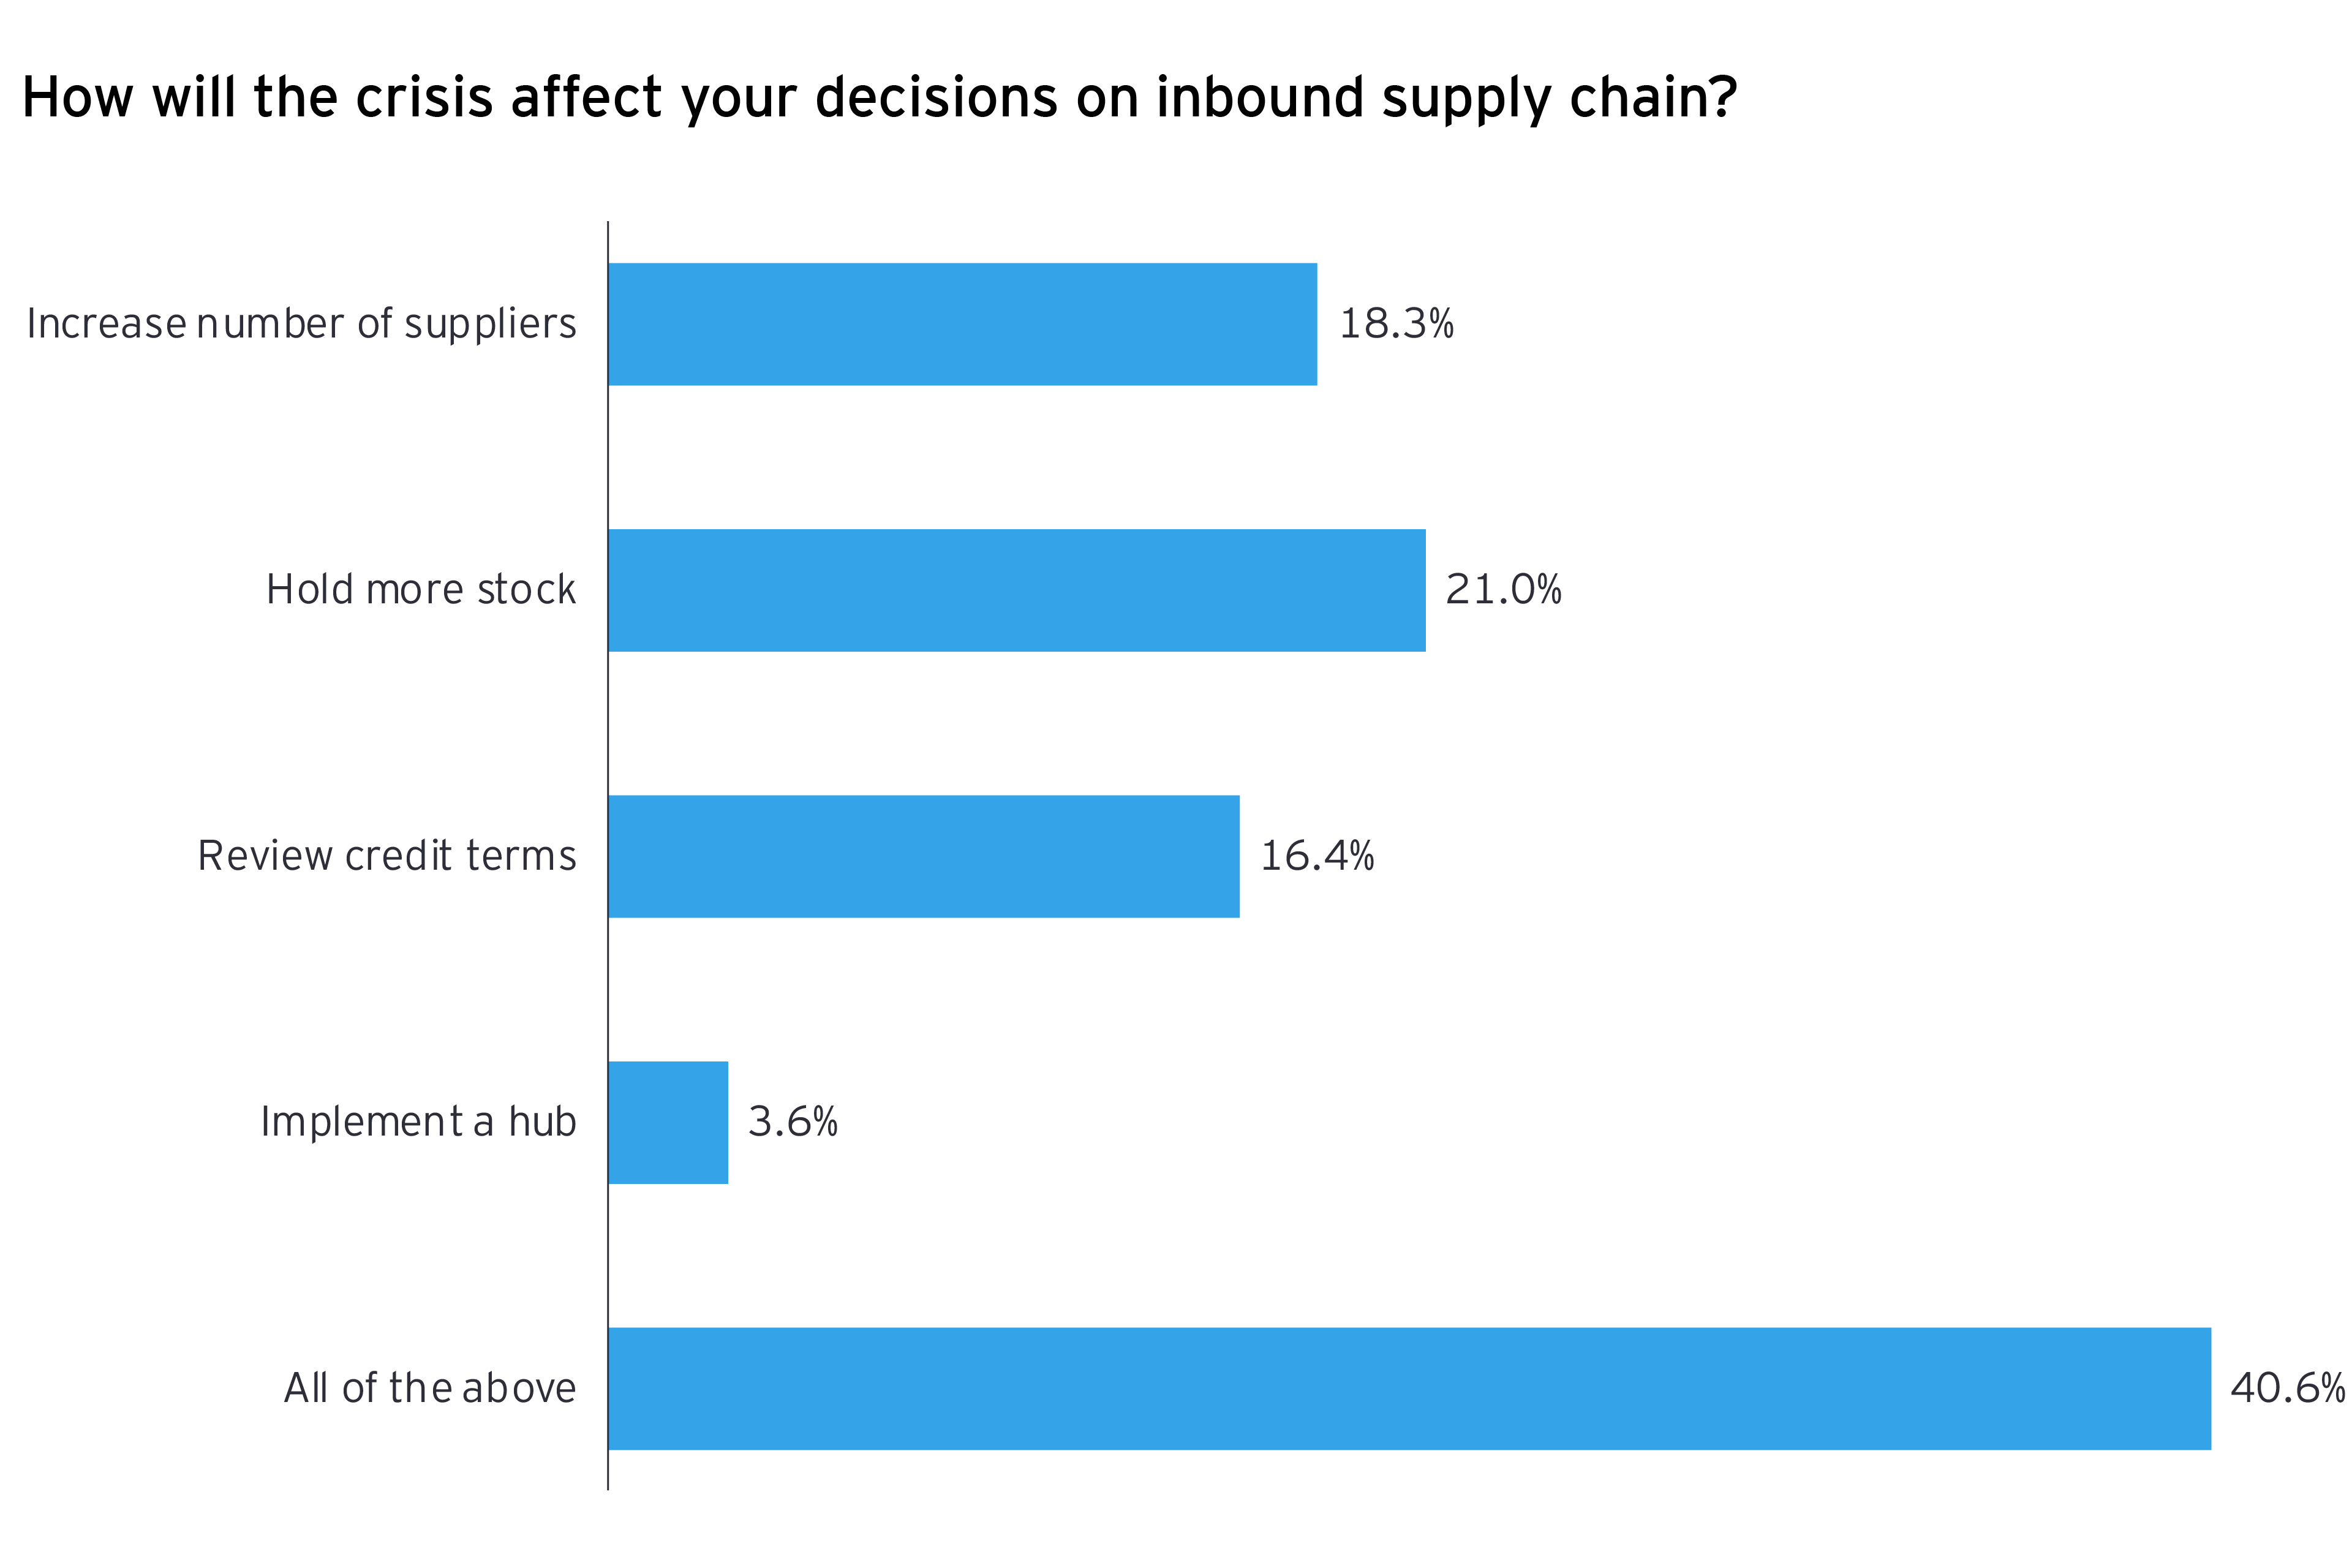 How will the crisis affect your decisions on inbound supply chain